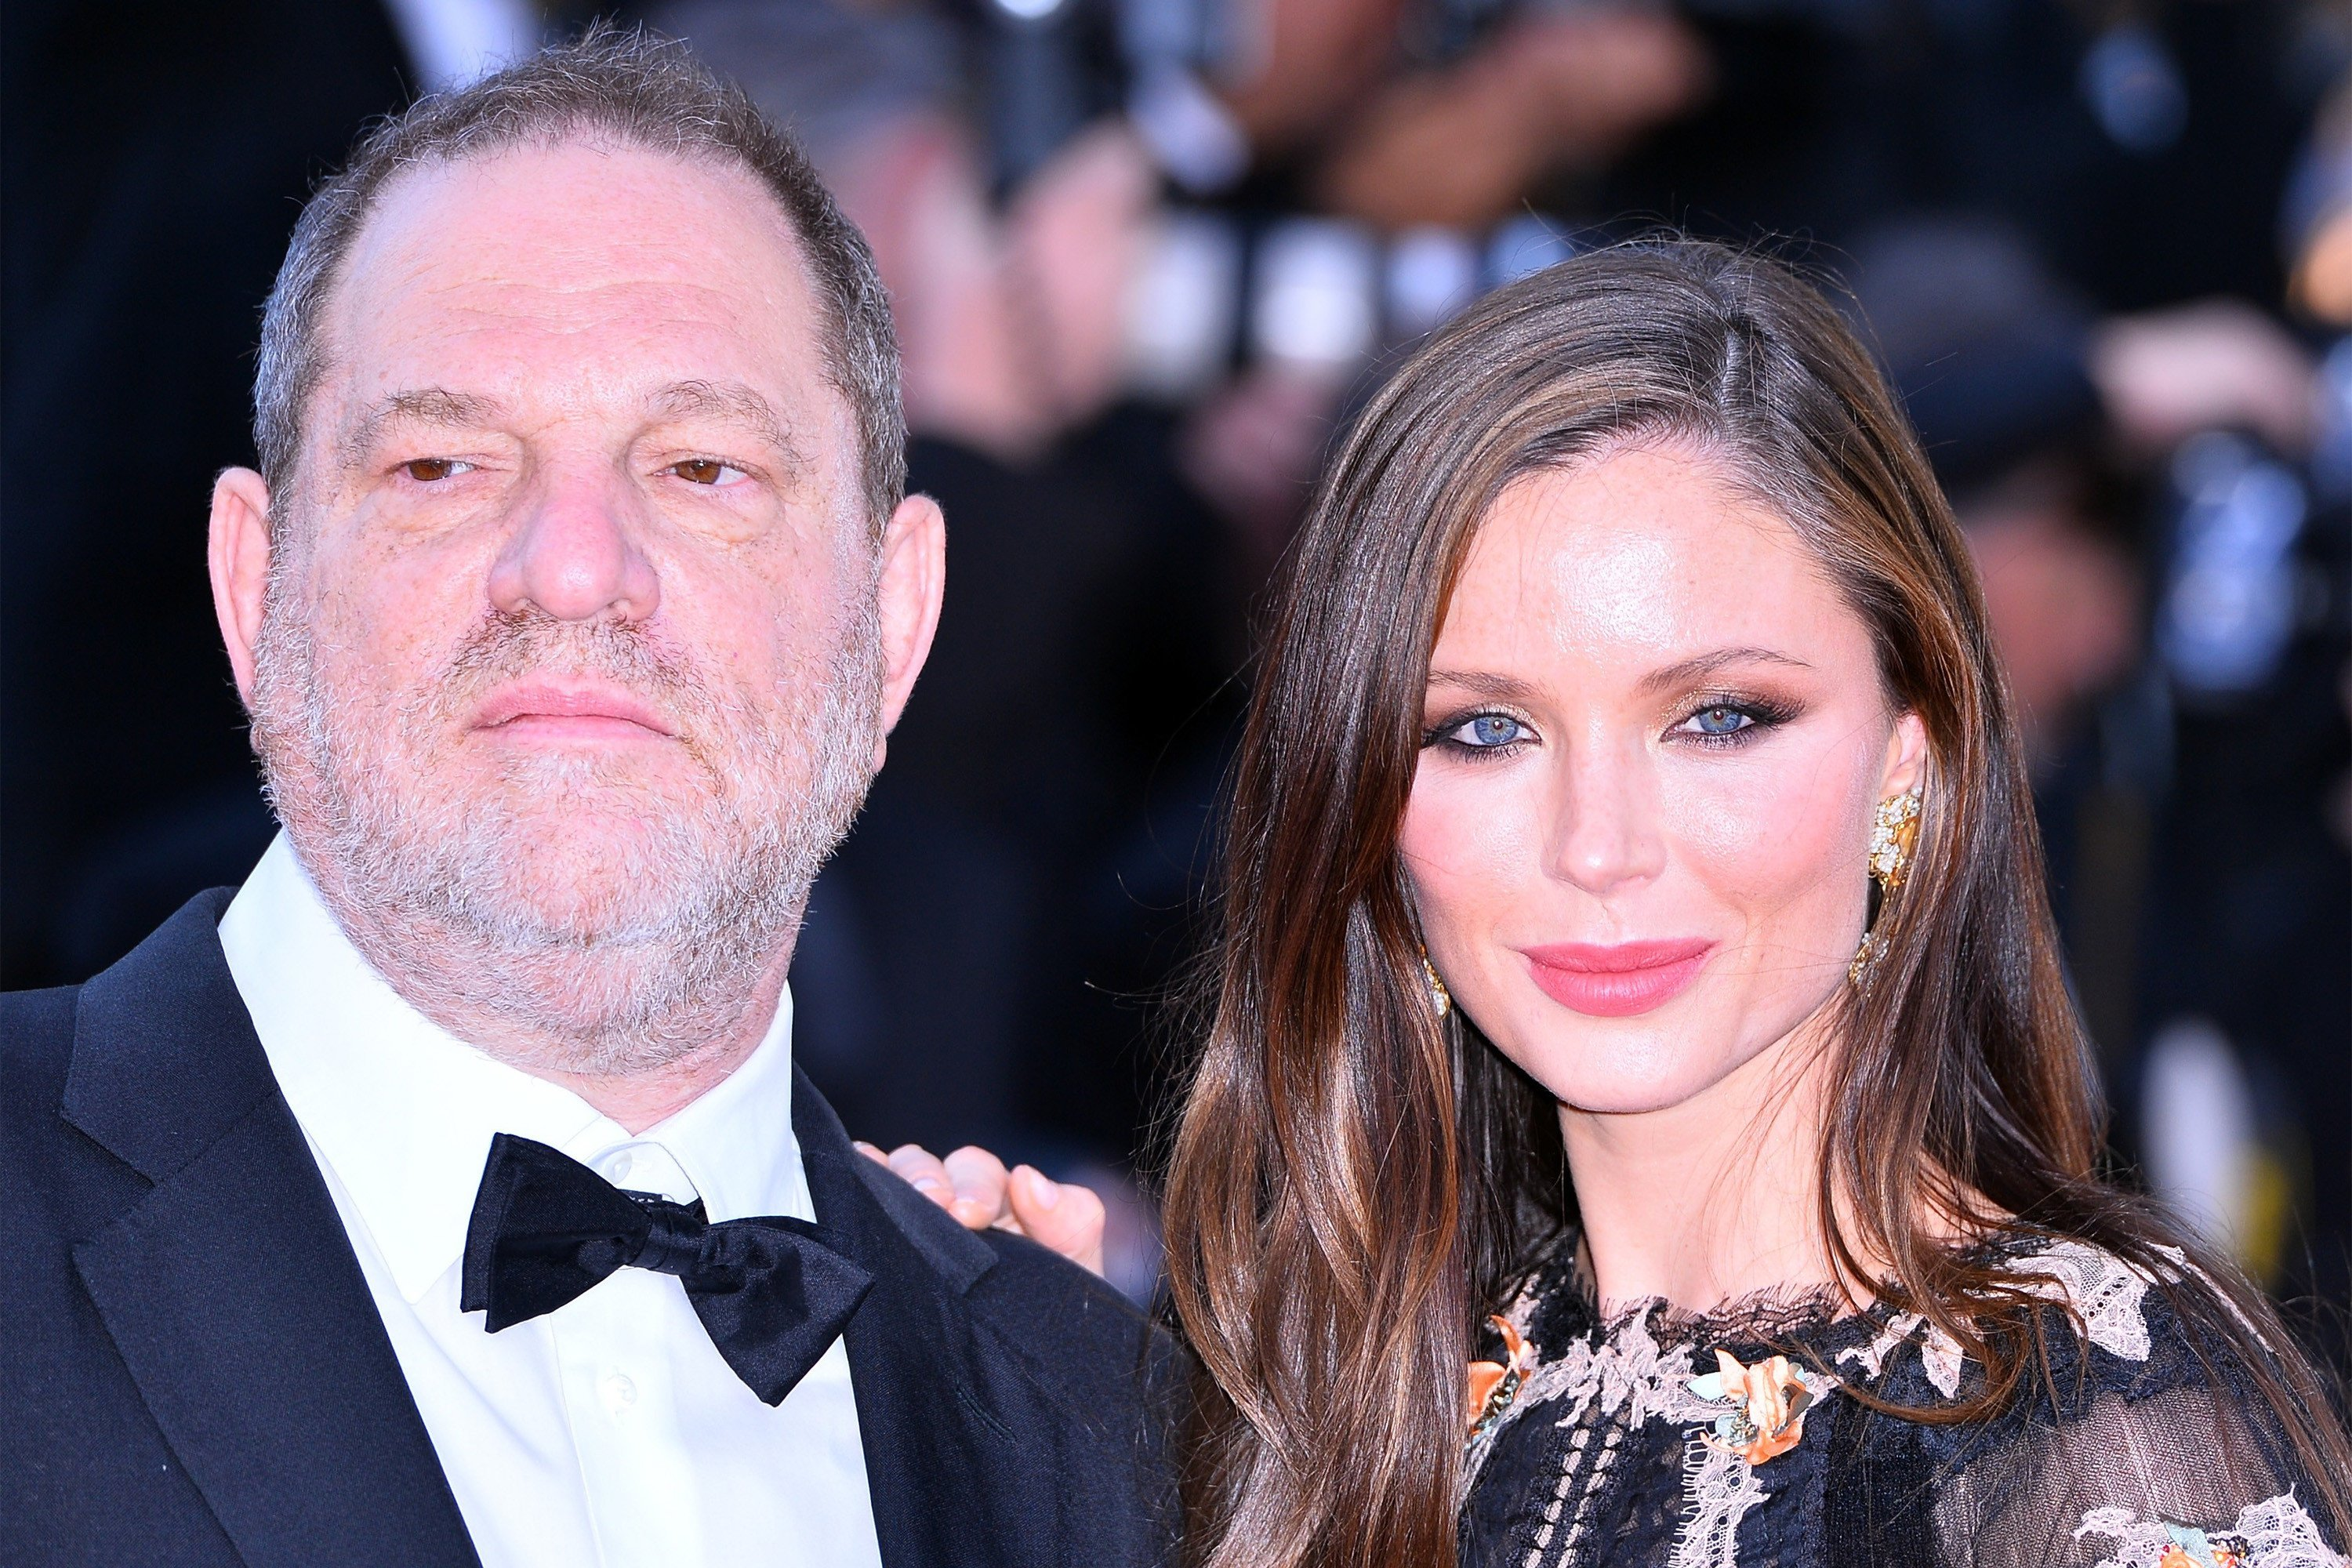 Georgina Chapman's Marchesa is canceling its Fashion Week runway show